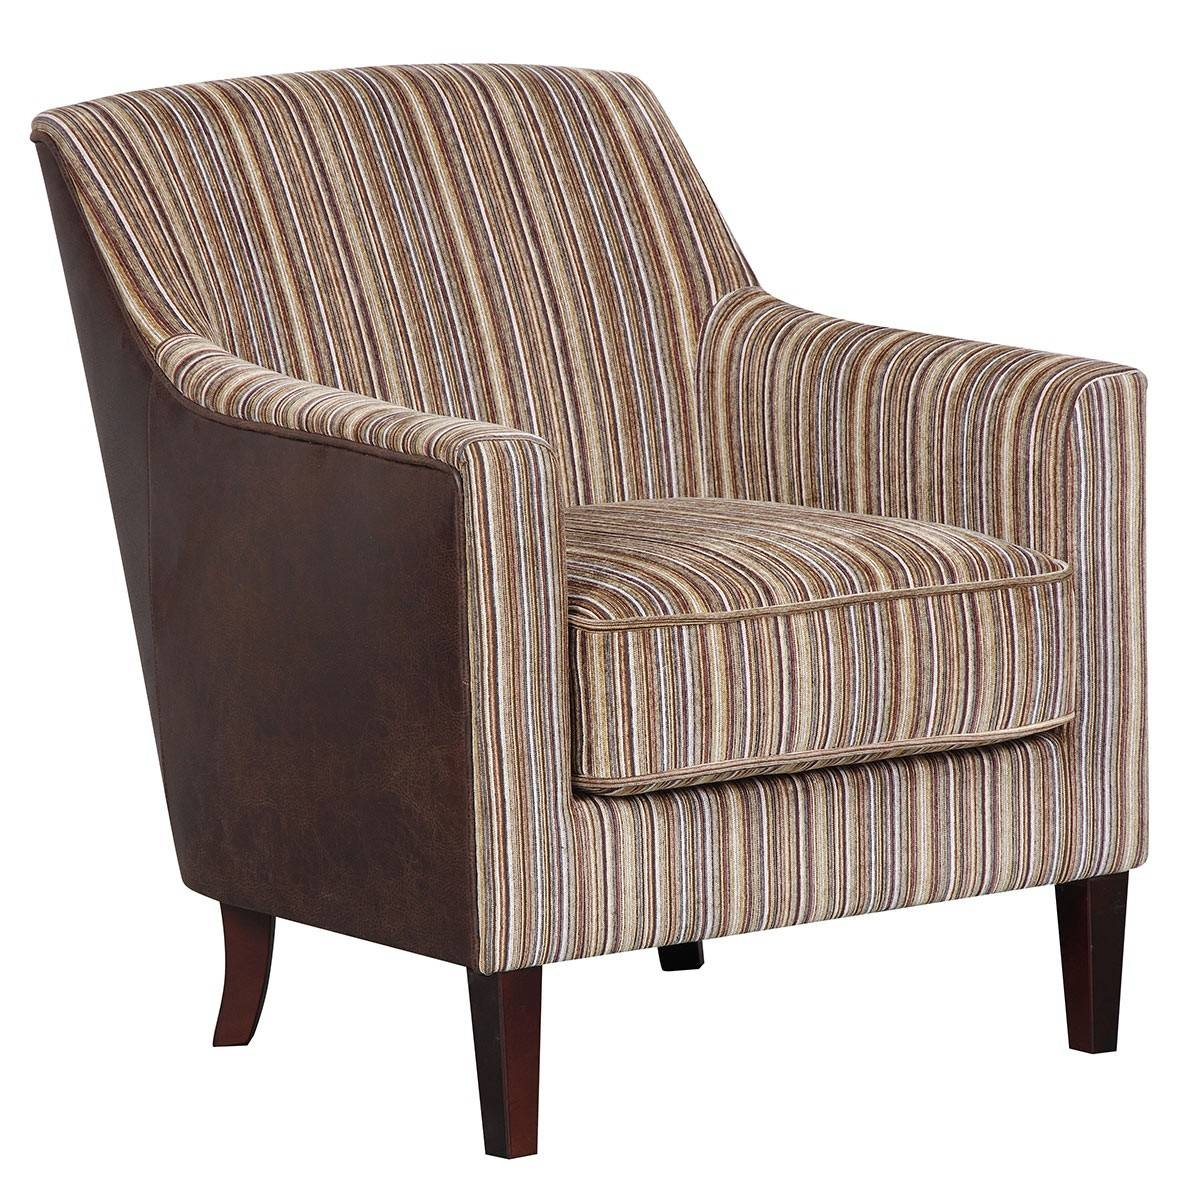 Canterbury Accent Chair Brown Stripe/ Chocolate Leather Effect within Canterbury Leather Sofas (Image 8 of 30)